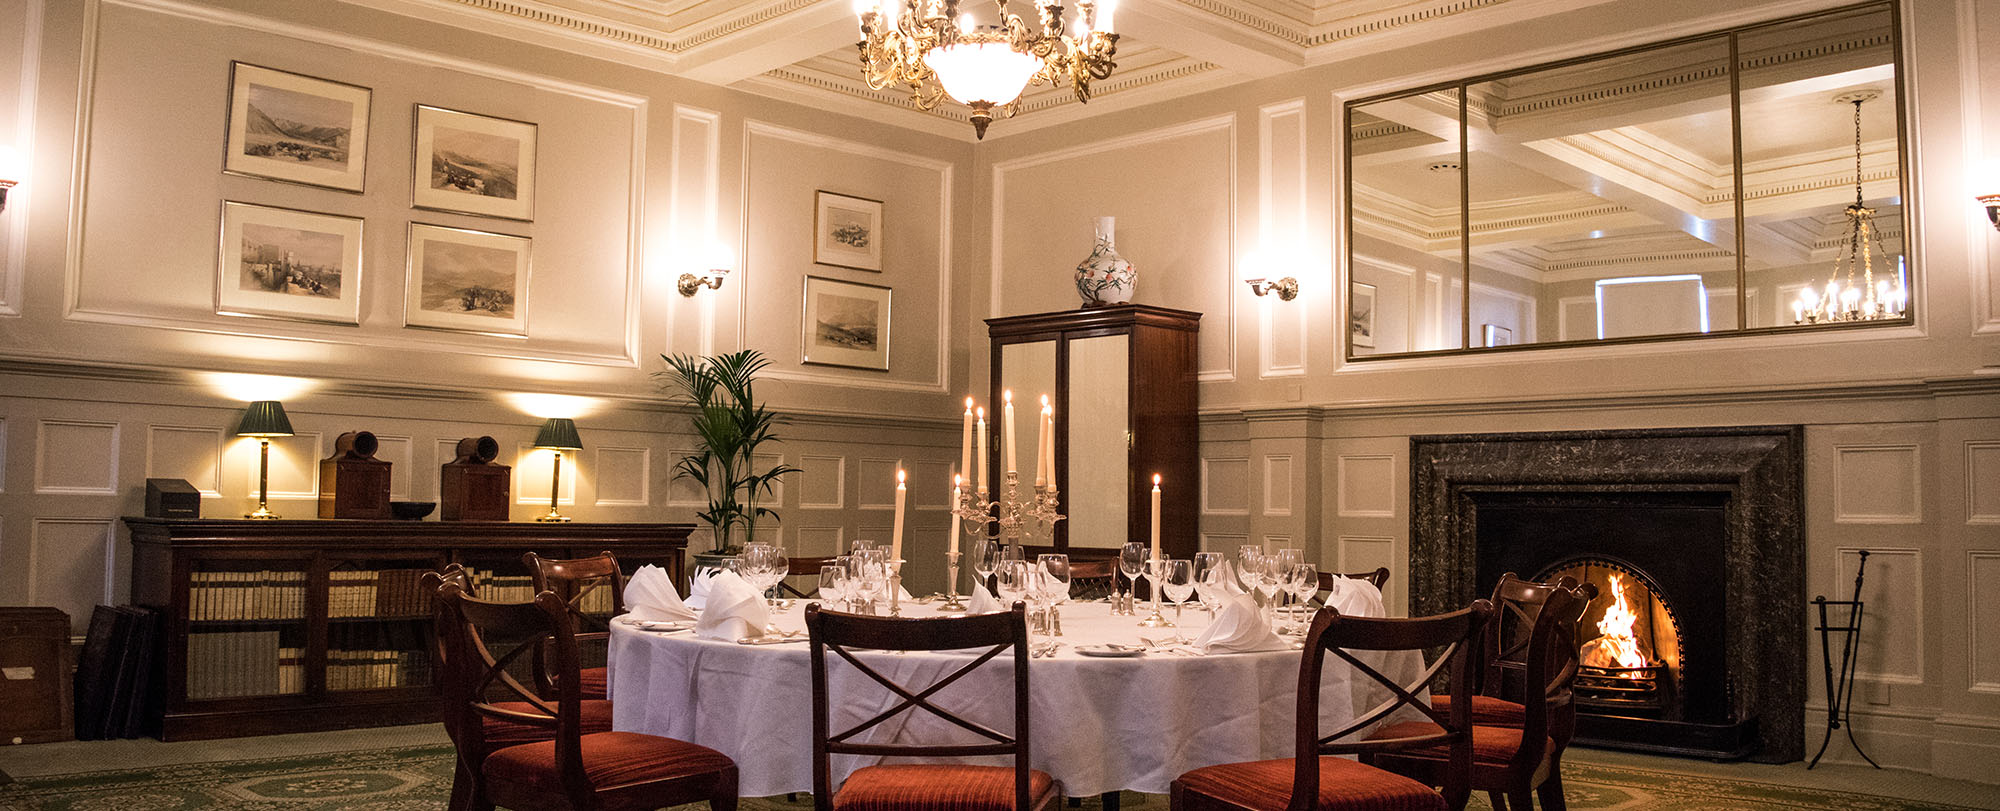 106 Pall Mall private function and dining rooms - Castlereagh Room